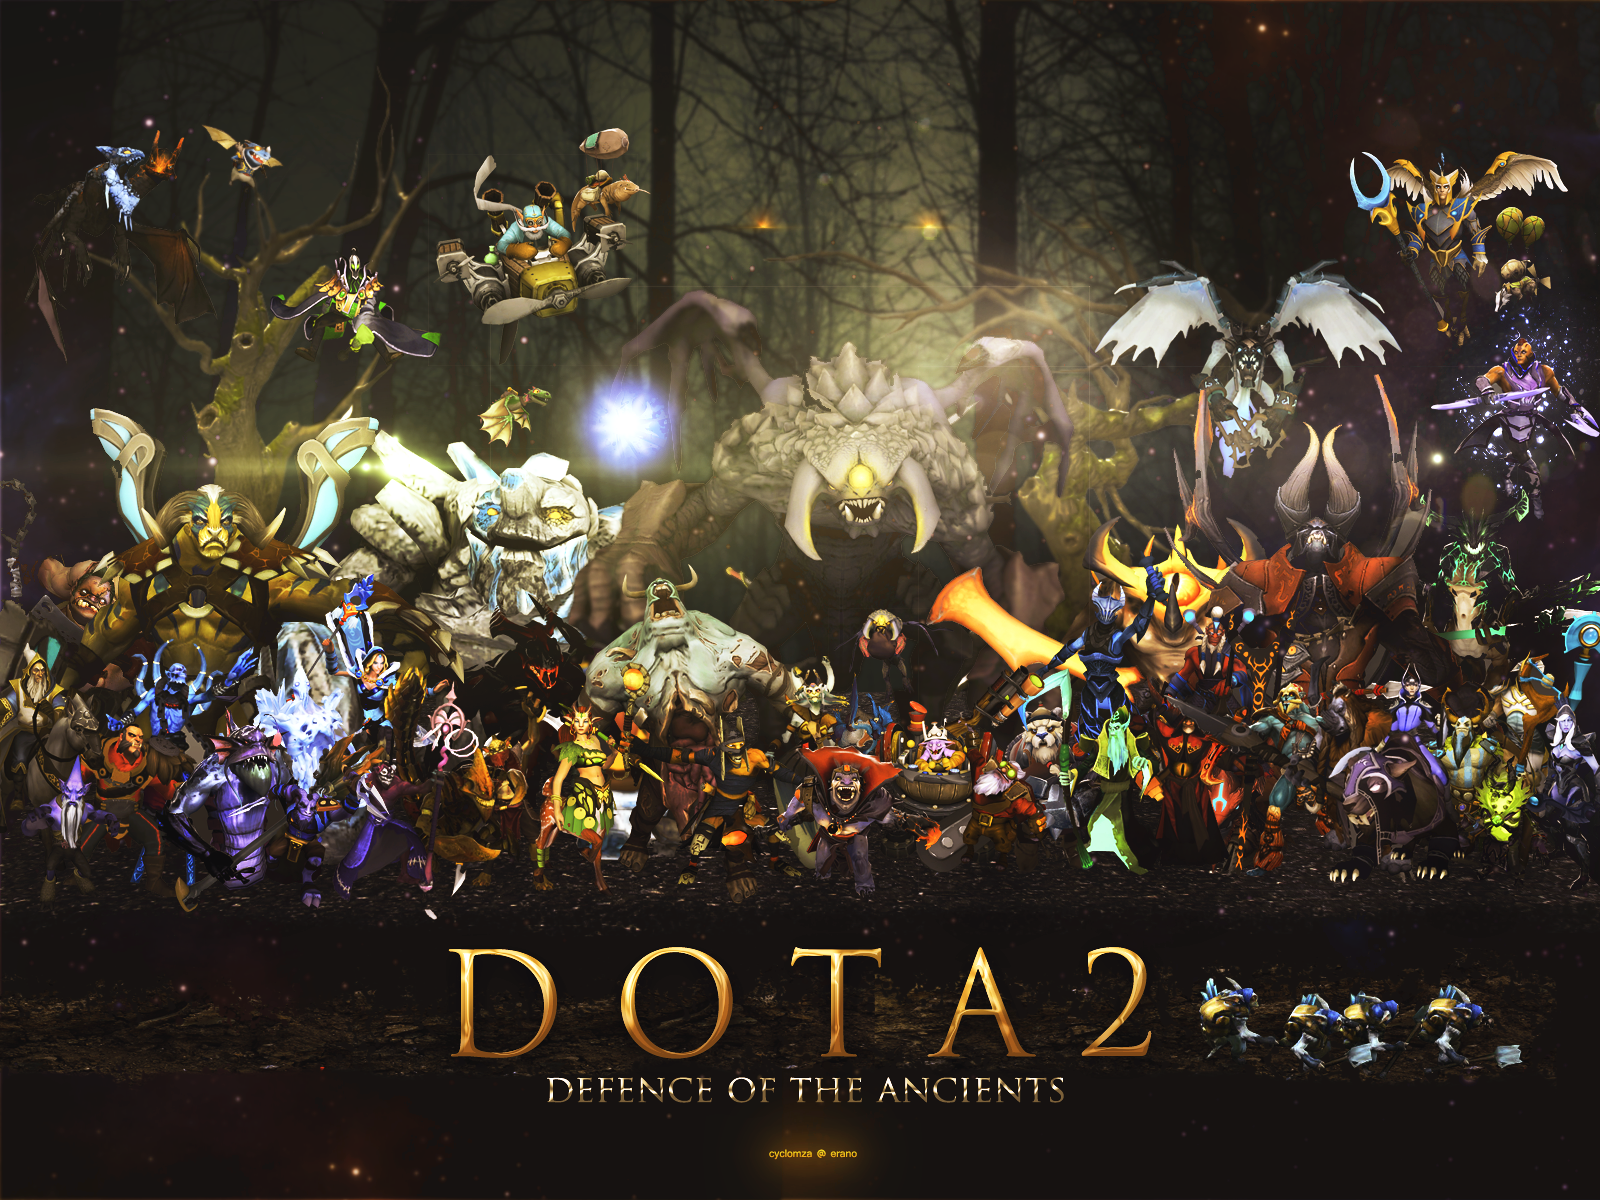 Top HDQ Dota 2 Images